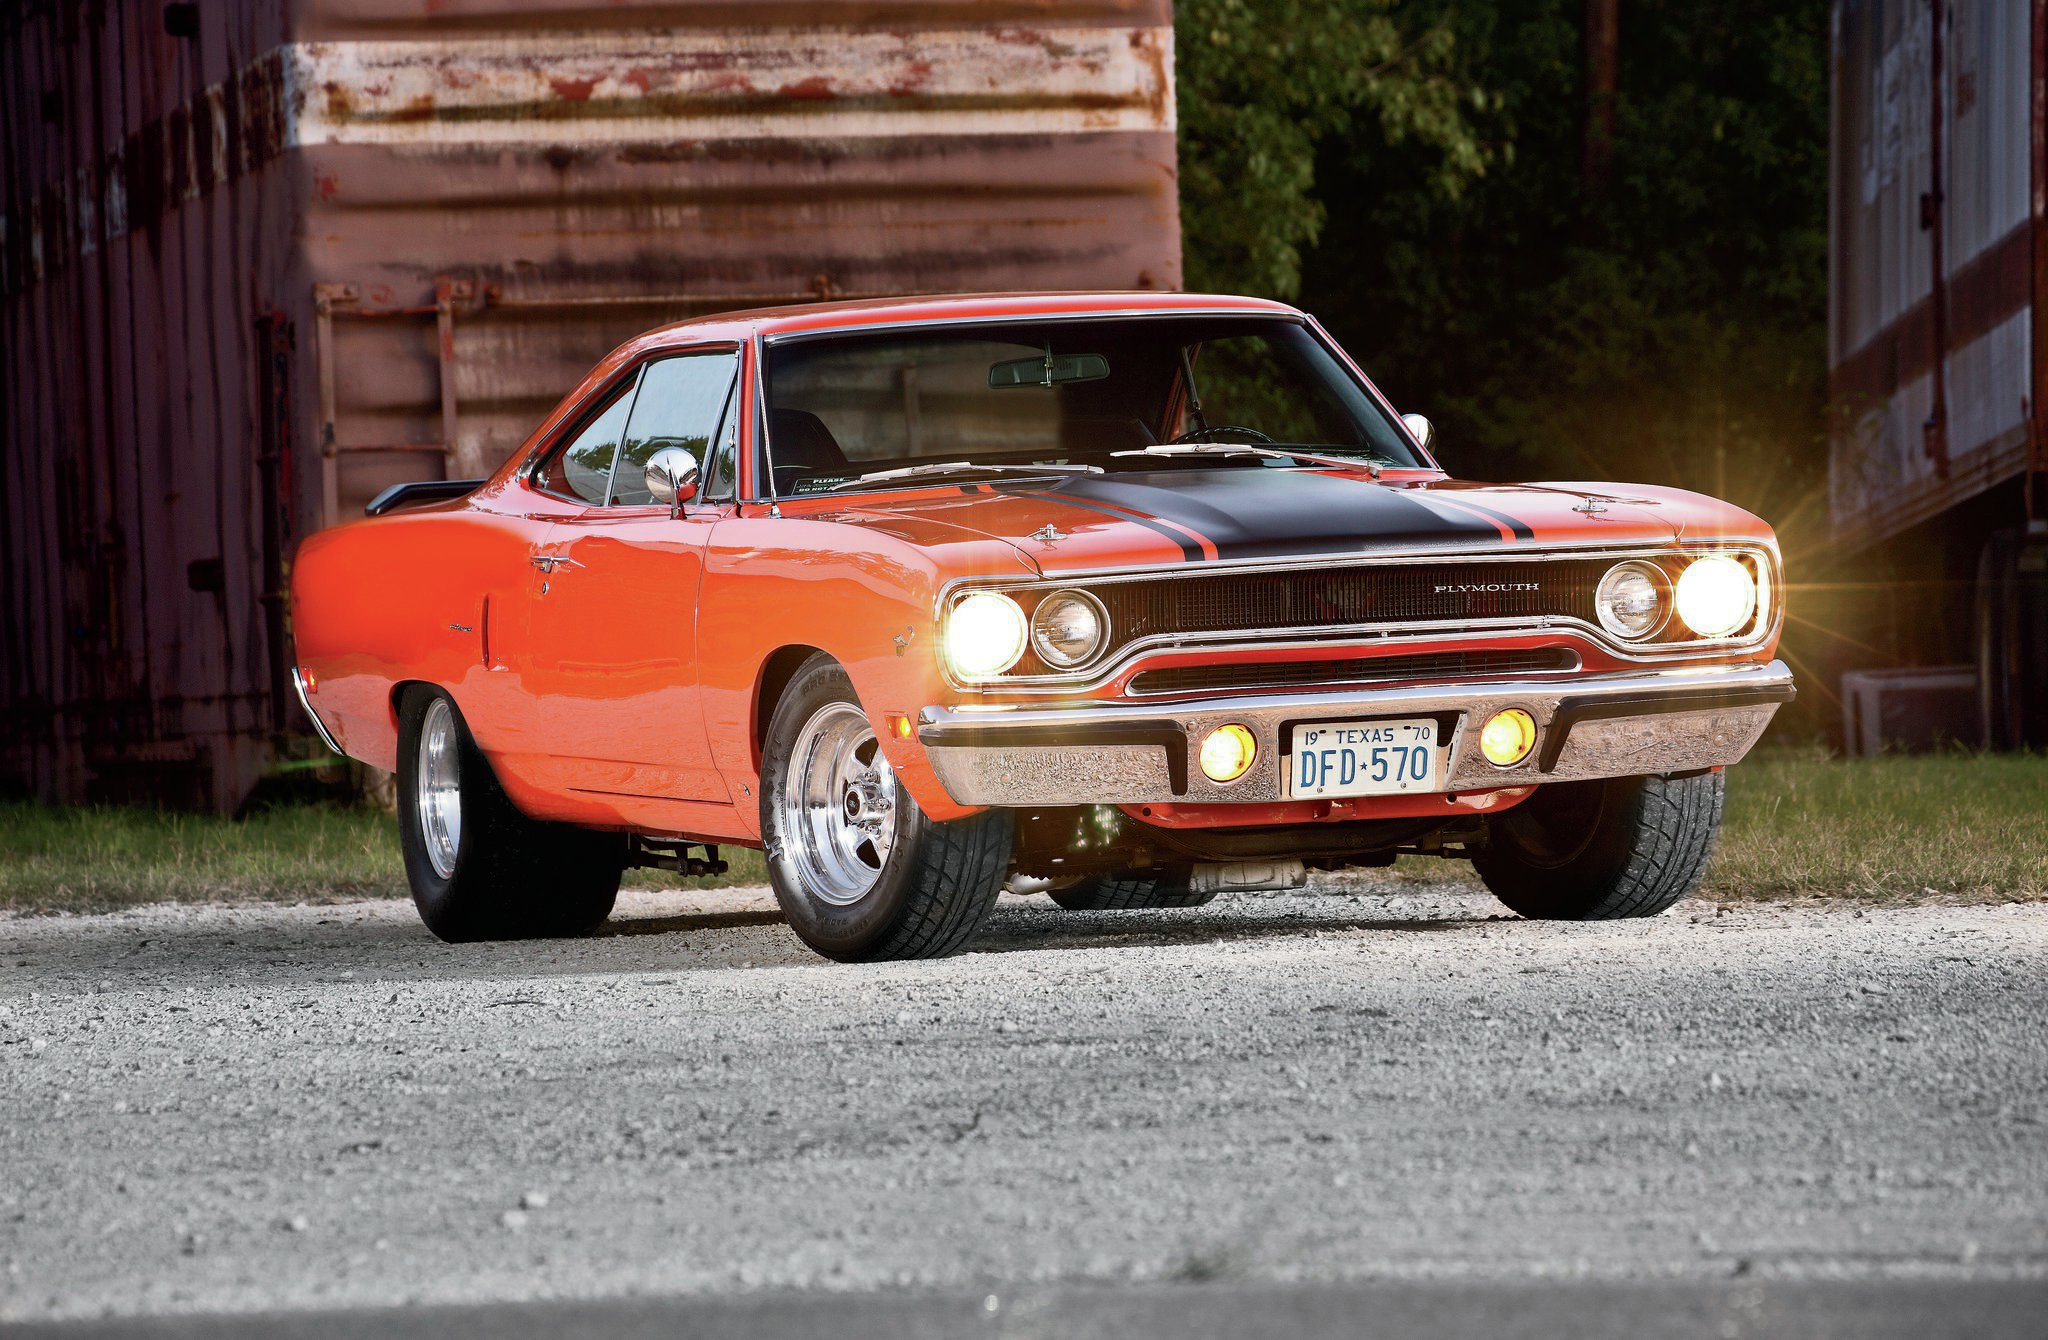 Street Racing Cars Wallpaper With Girls 1970 Plymouth Road Runner Worth The Wait Hot Rod Network